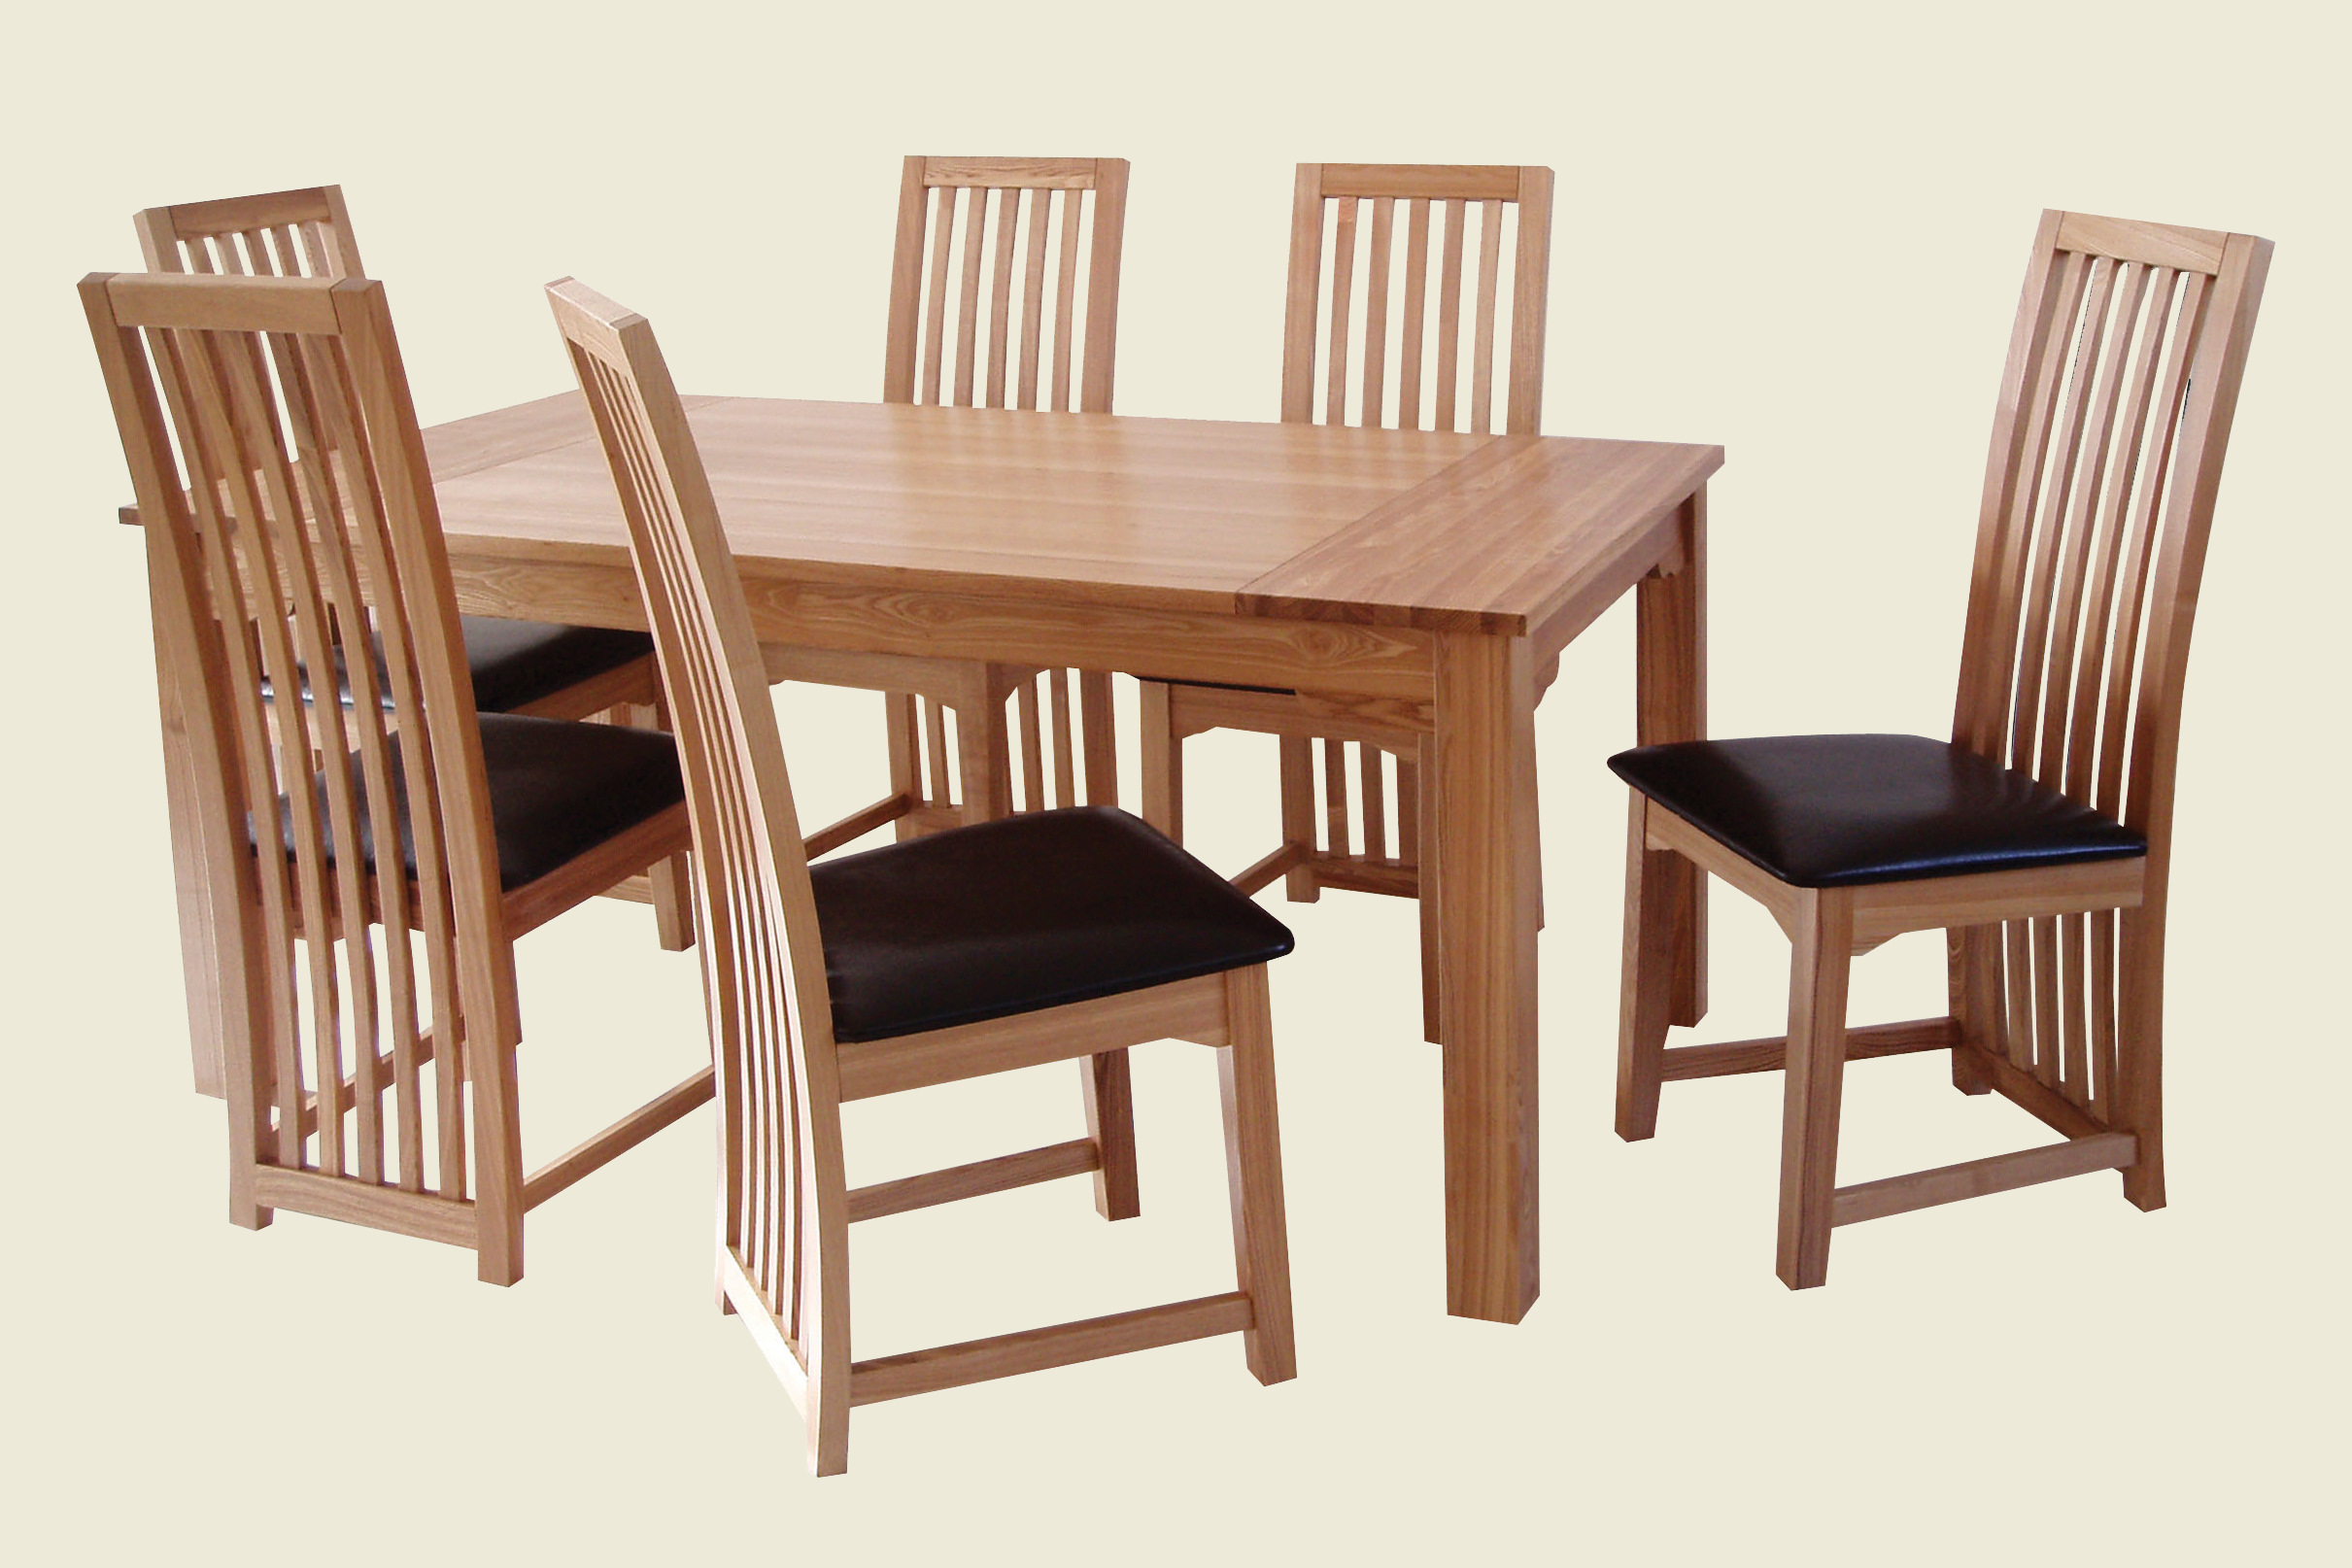 Impressive Dining Table and Chair Sets 2421 x 1614 · 719 kB · jpeg